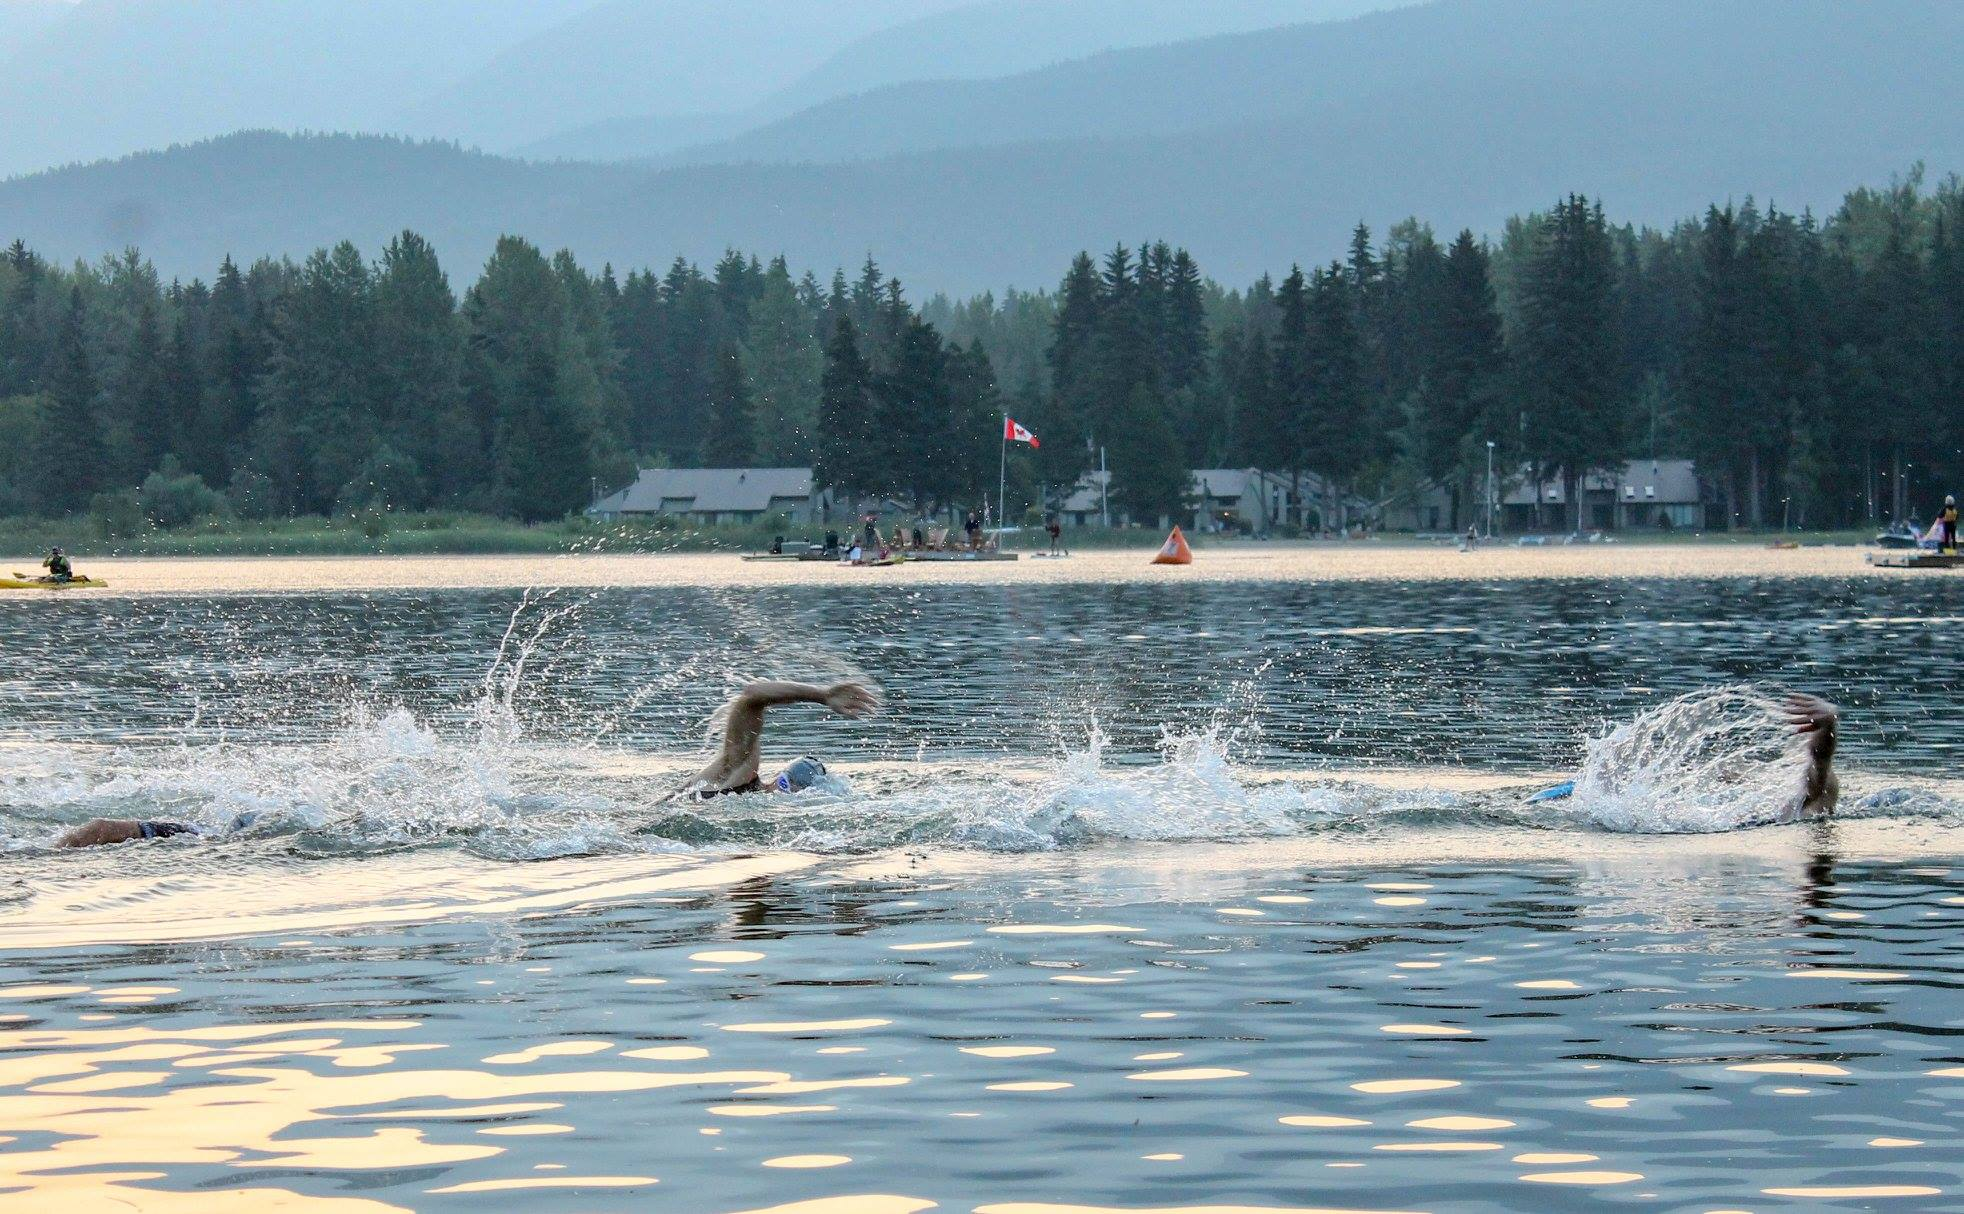 Coach_Terry_Wilson_Pursuit_of_The_Perfect_Race_IRONMAN_Canada_70.3_Roy_McBeth_Olympic_Rings_Wattie_Hit_Squad_Swim.jpg